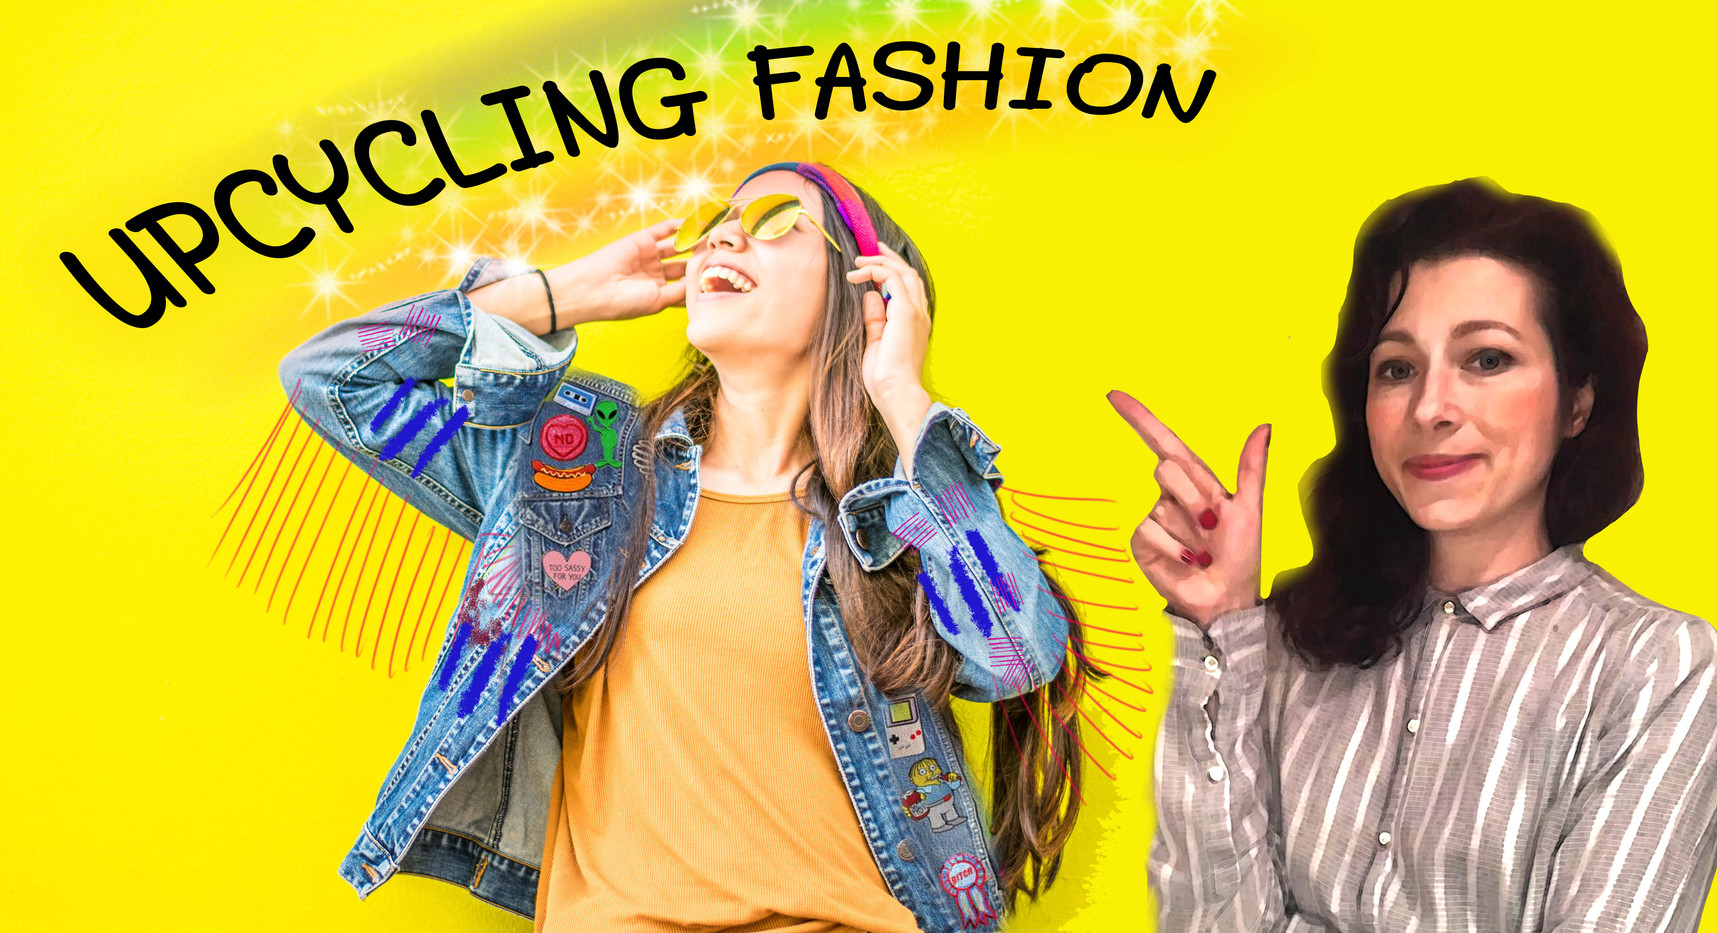 Upcycling Fashion Design Course